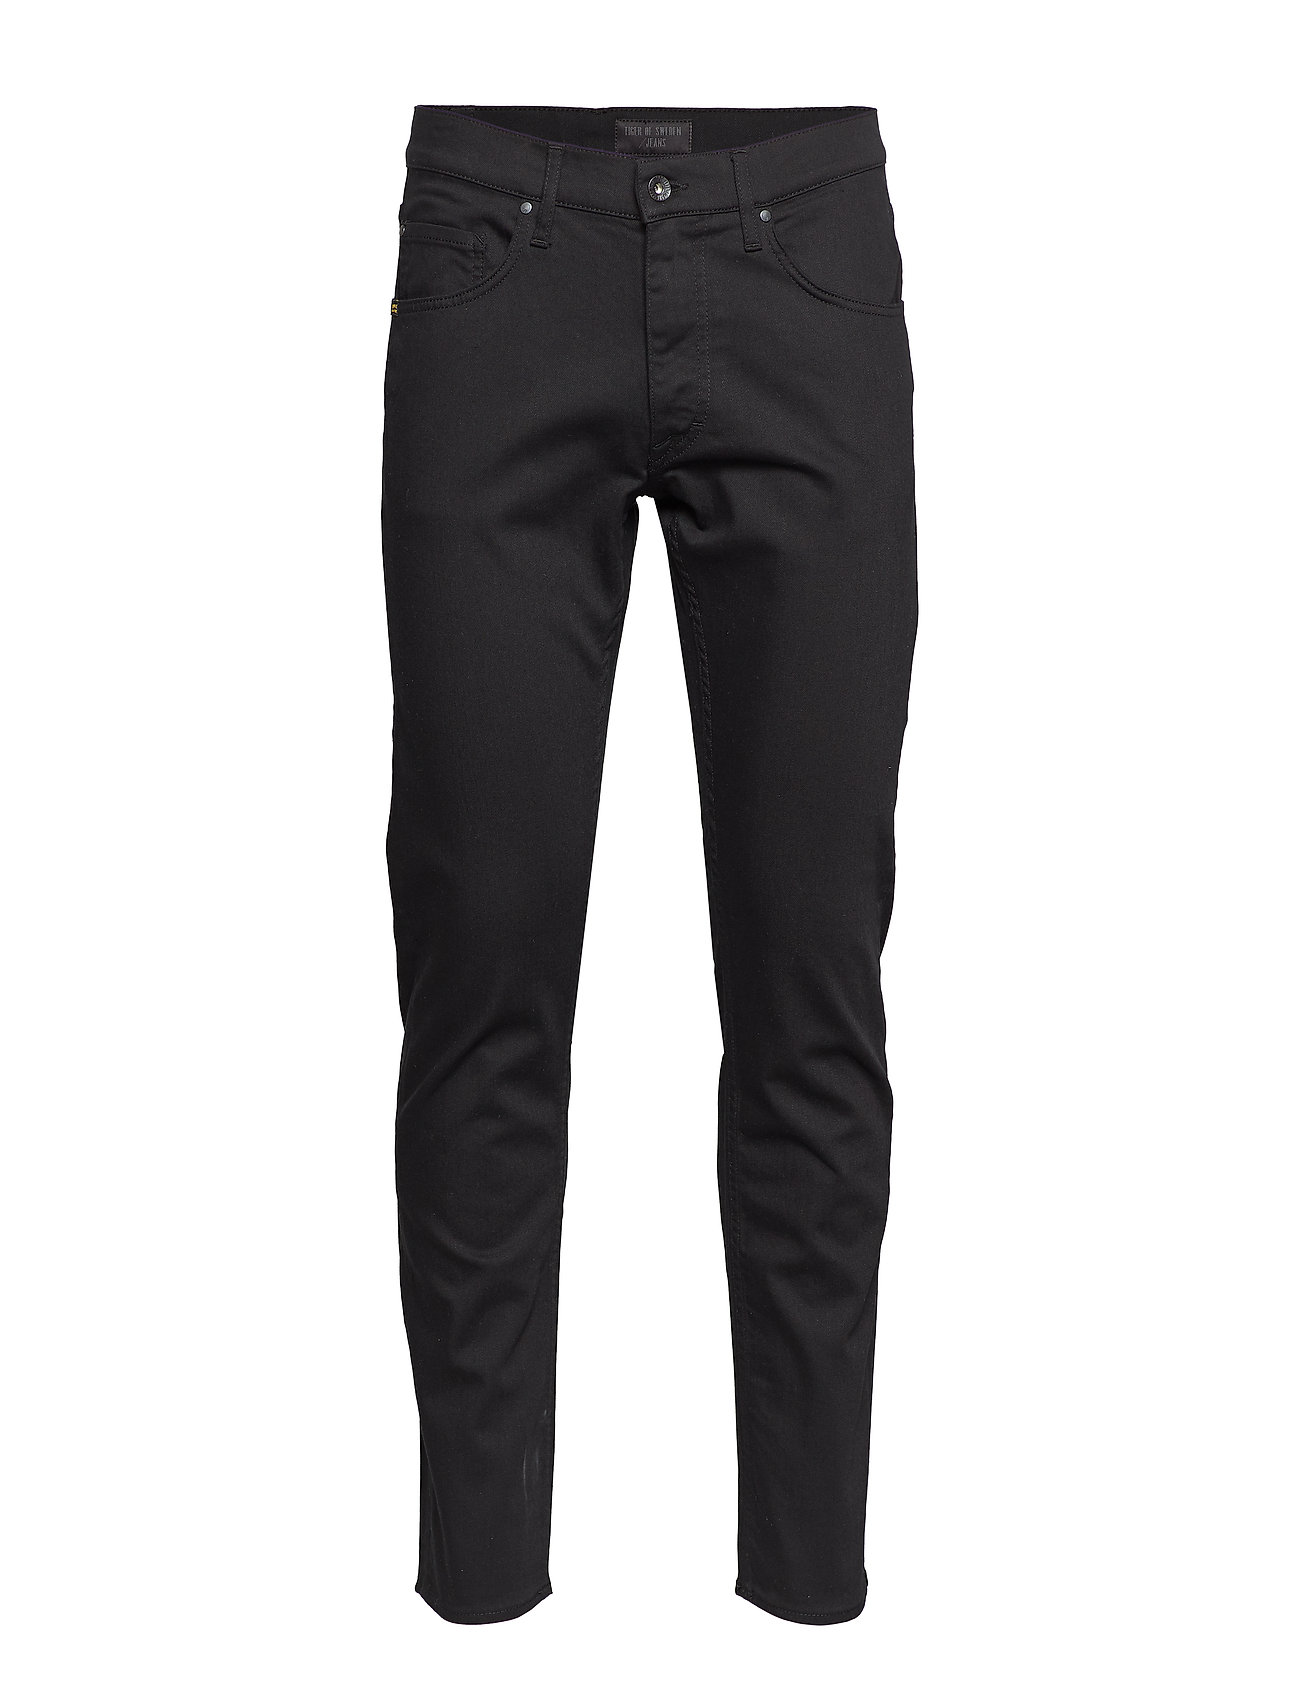 Tiger of Sweden Jeans IGGY - BLACK